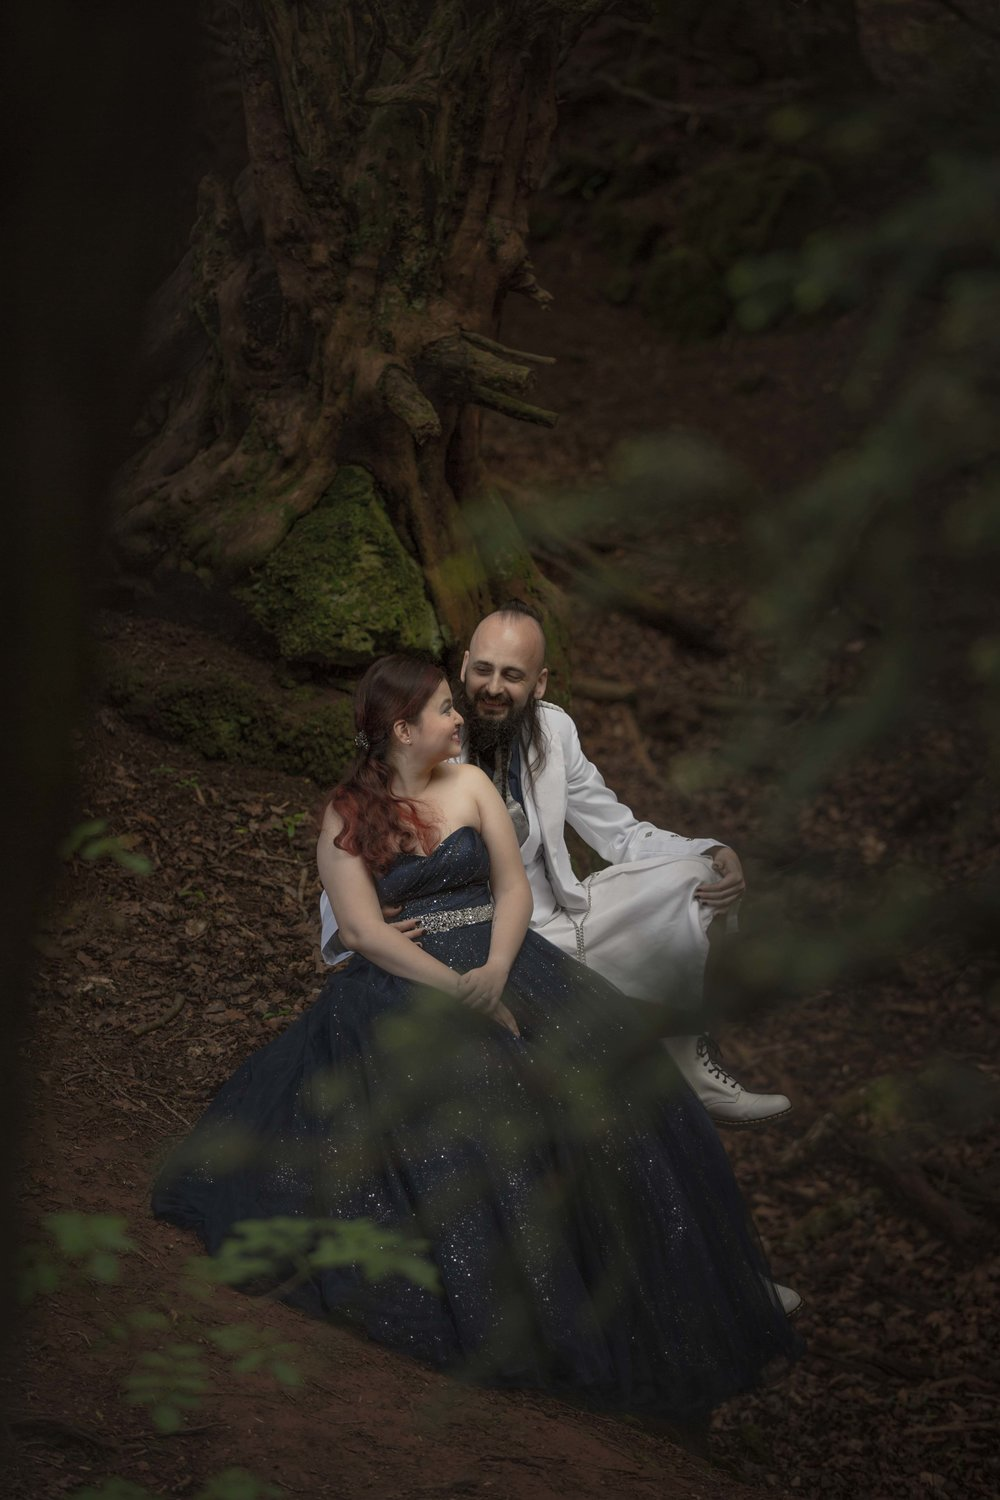 Puzzlewood-fairytale-fairy-forest-wood-prewedding-photoshoot-star-wars-couple-shoot-asian-wedding-photographer-natalia-smith-photography-12.jpg